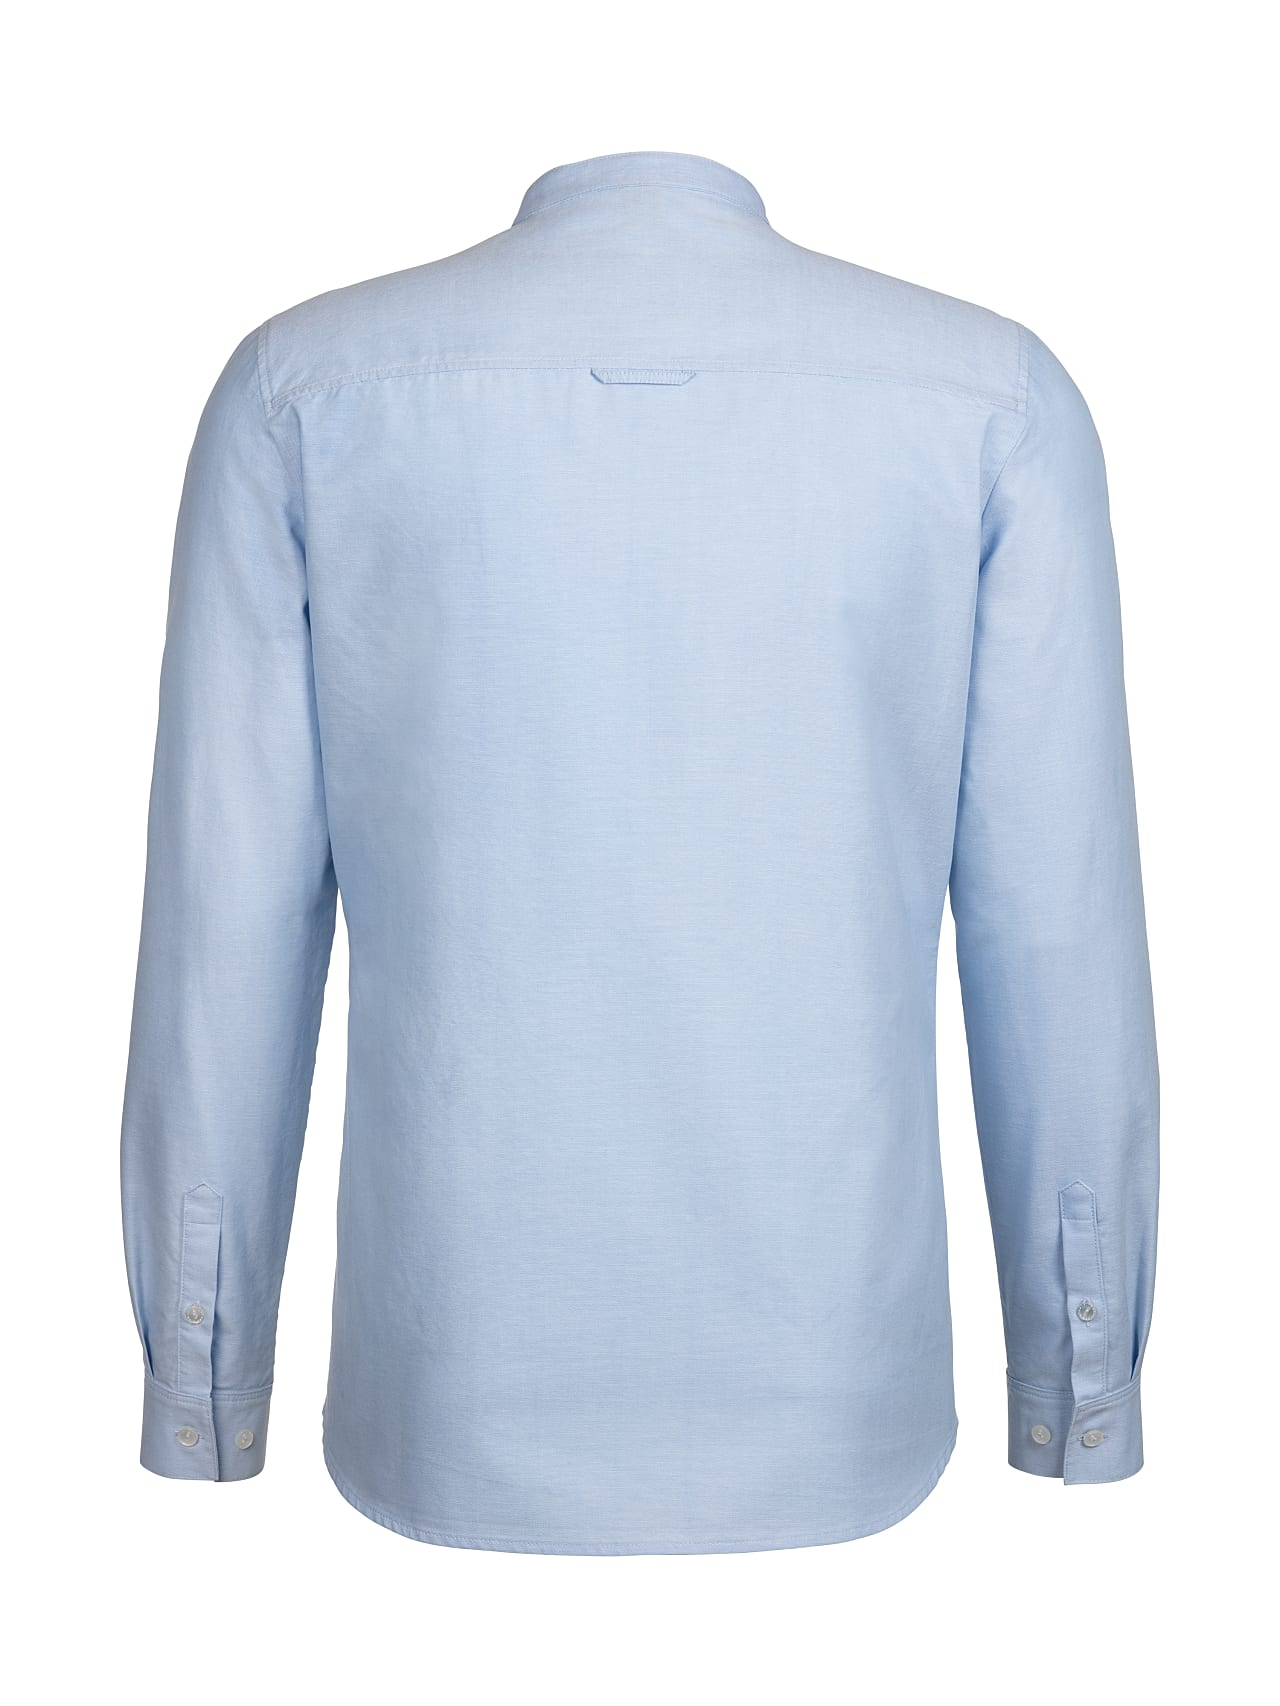 WIDT V8.Y4.01 Classic Oxford Shirt with Stand-up Collar light blue Left Alpha Tauri